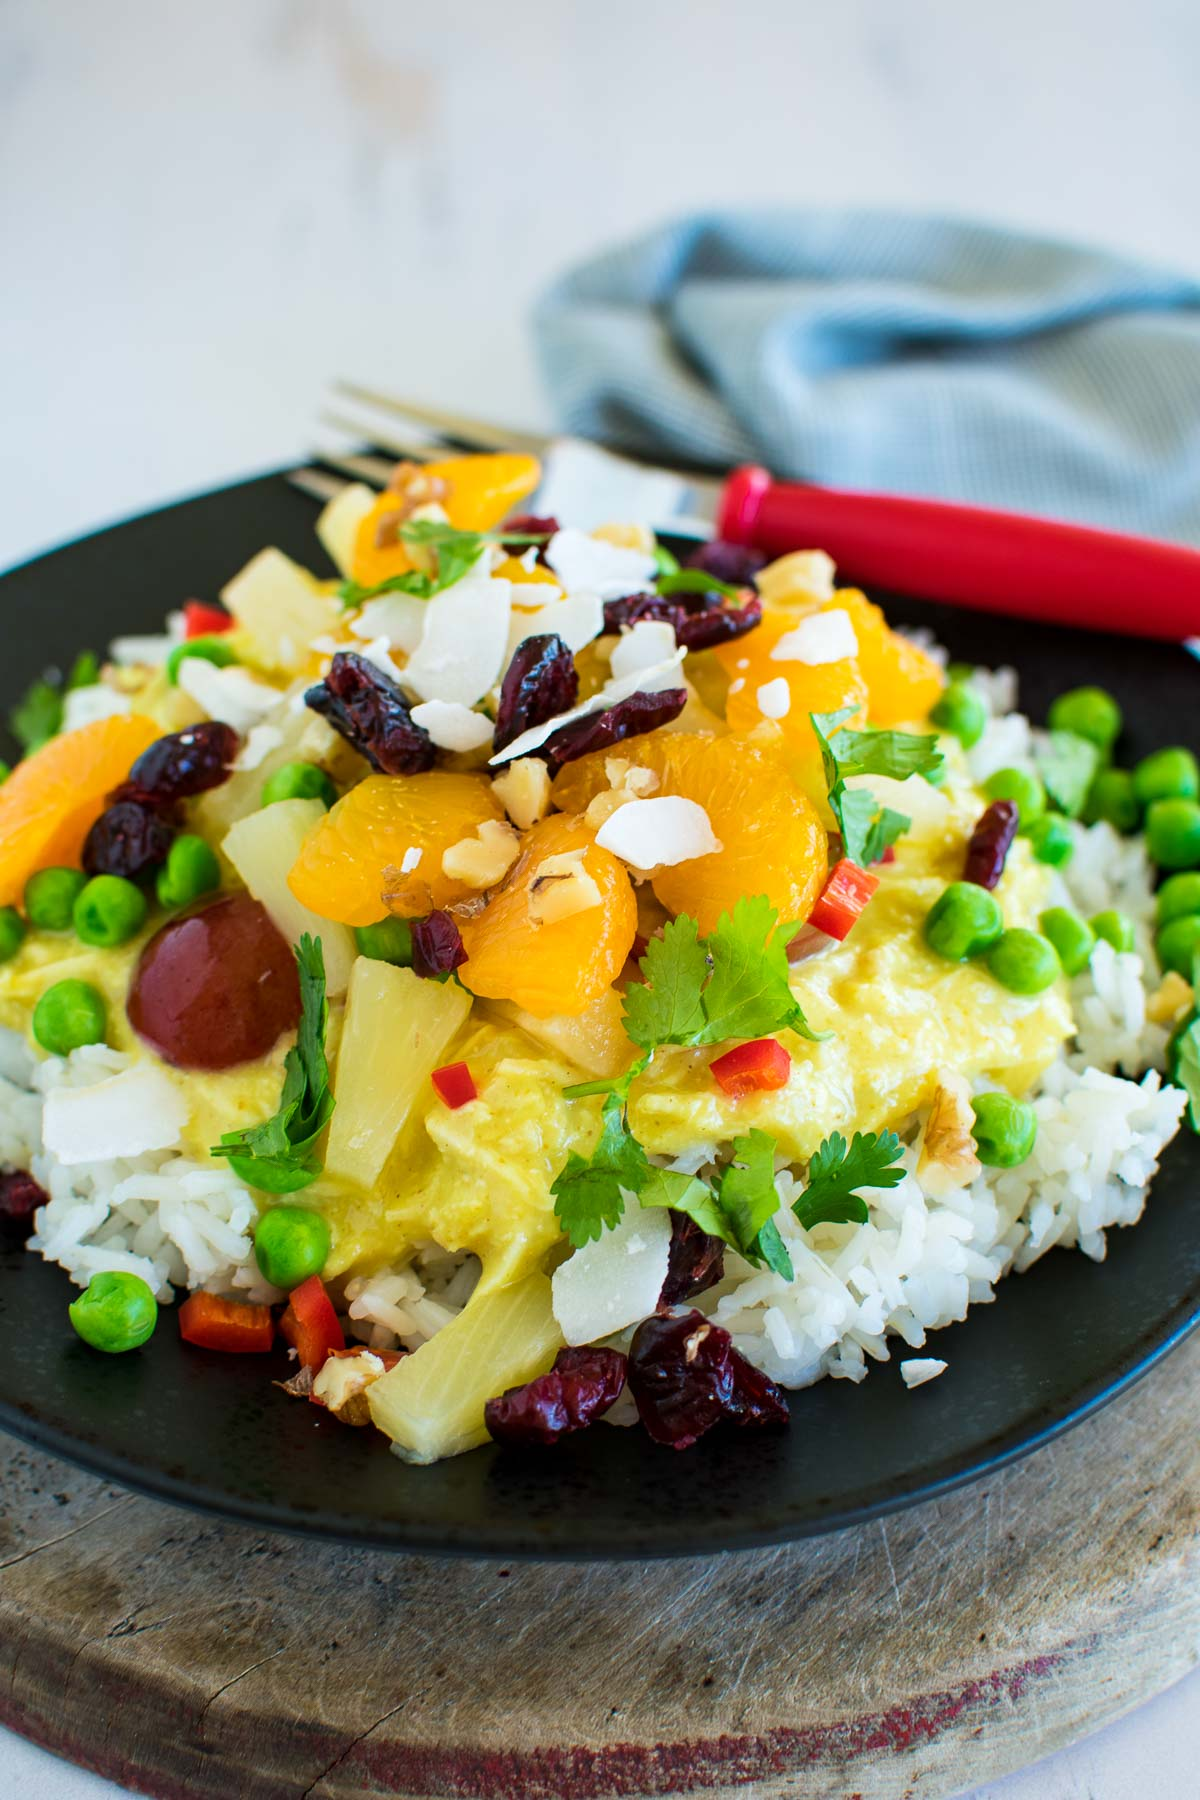 Hawaiian haystacks recipe with pineapple and other toppings.